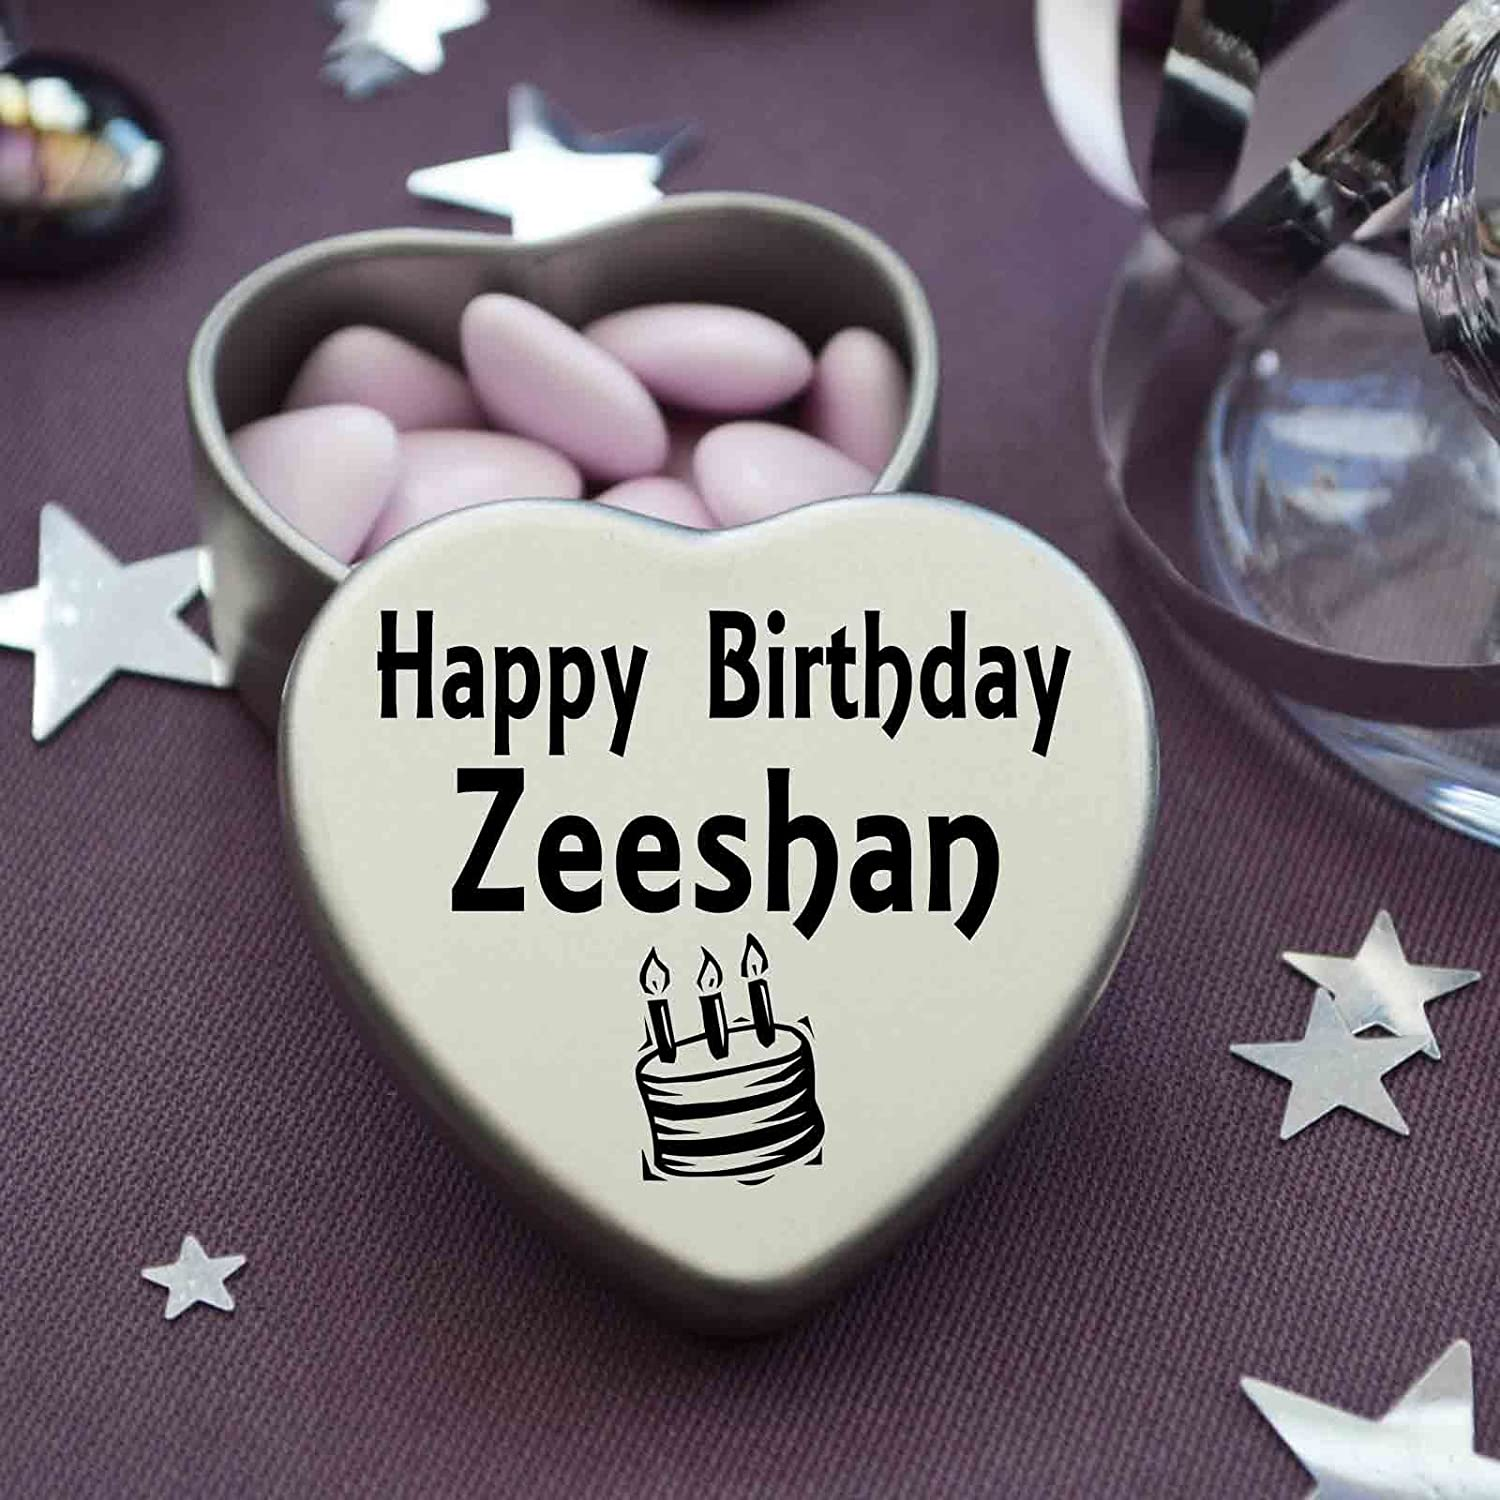 Happy Birthday Zeeshan Mini Heart Tin Gift Present For Zeeshan WIth